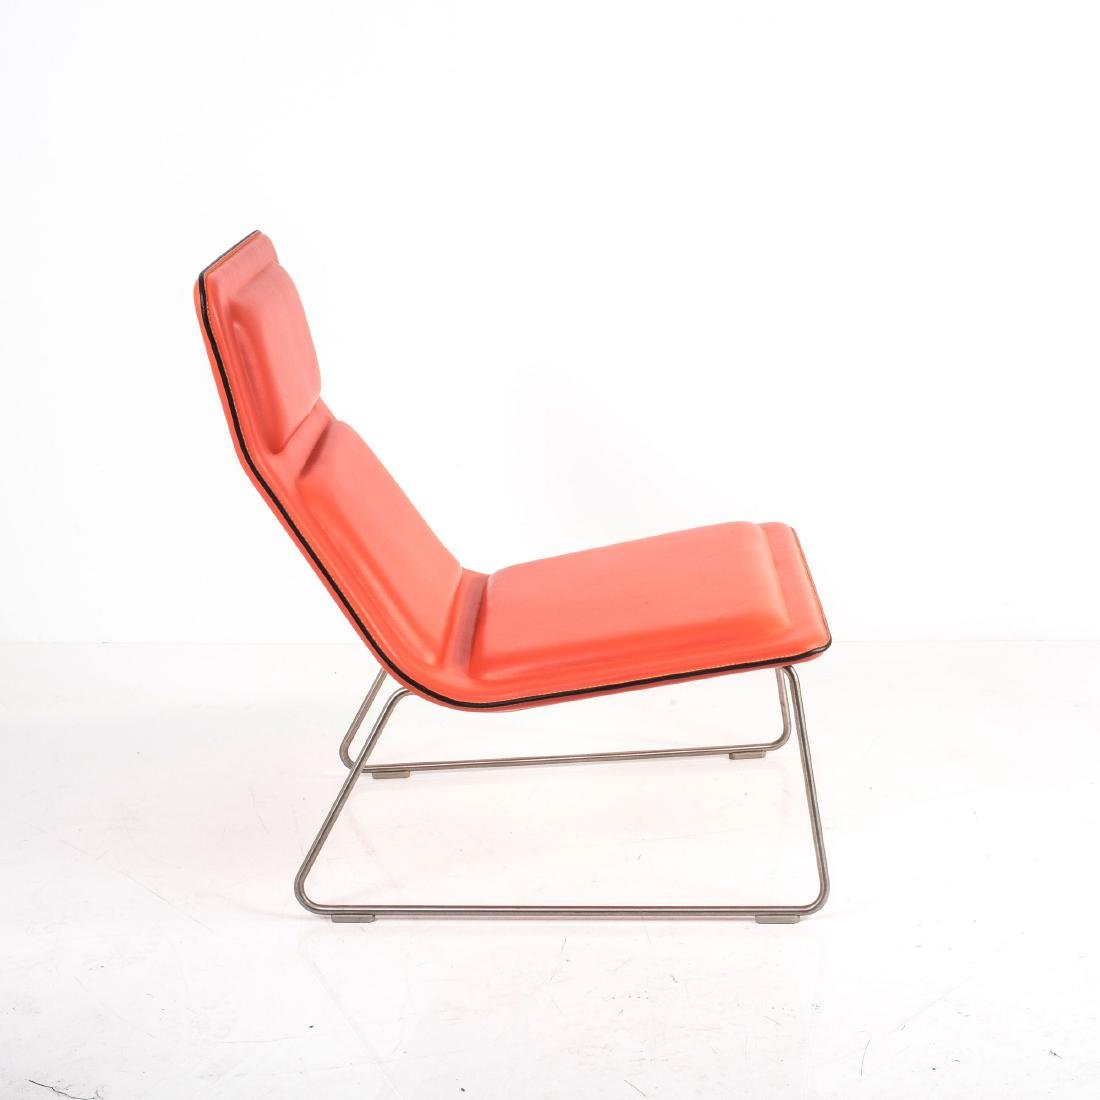 'Low Pad' chair, 1999 - 4